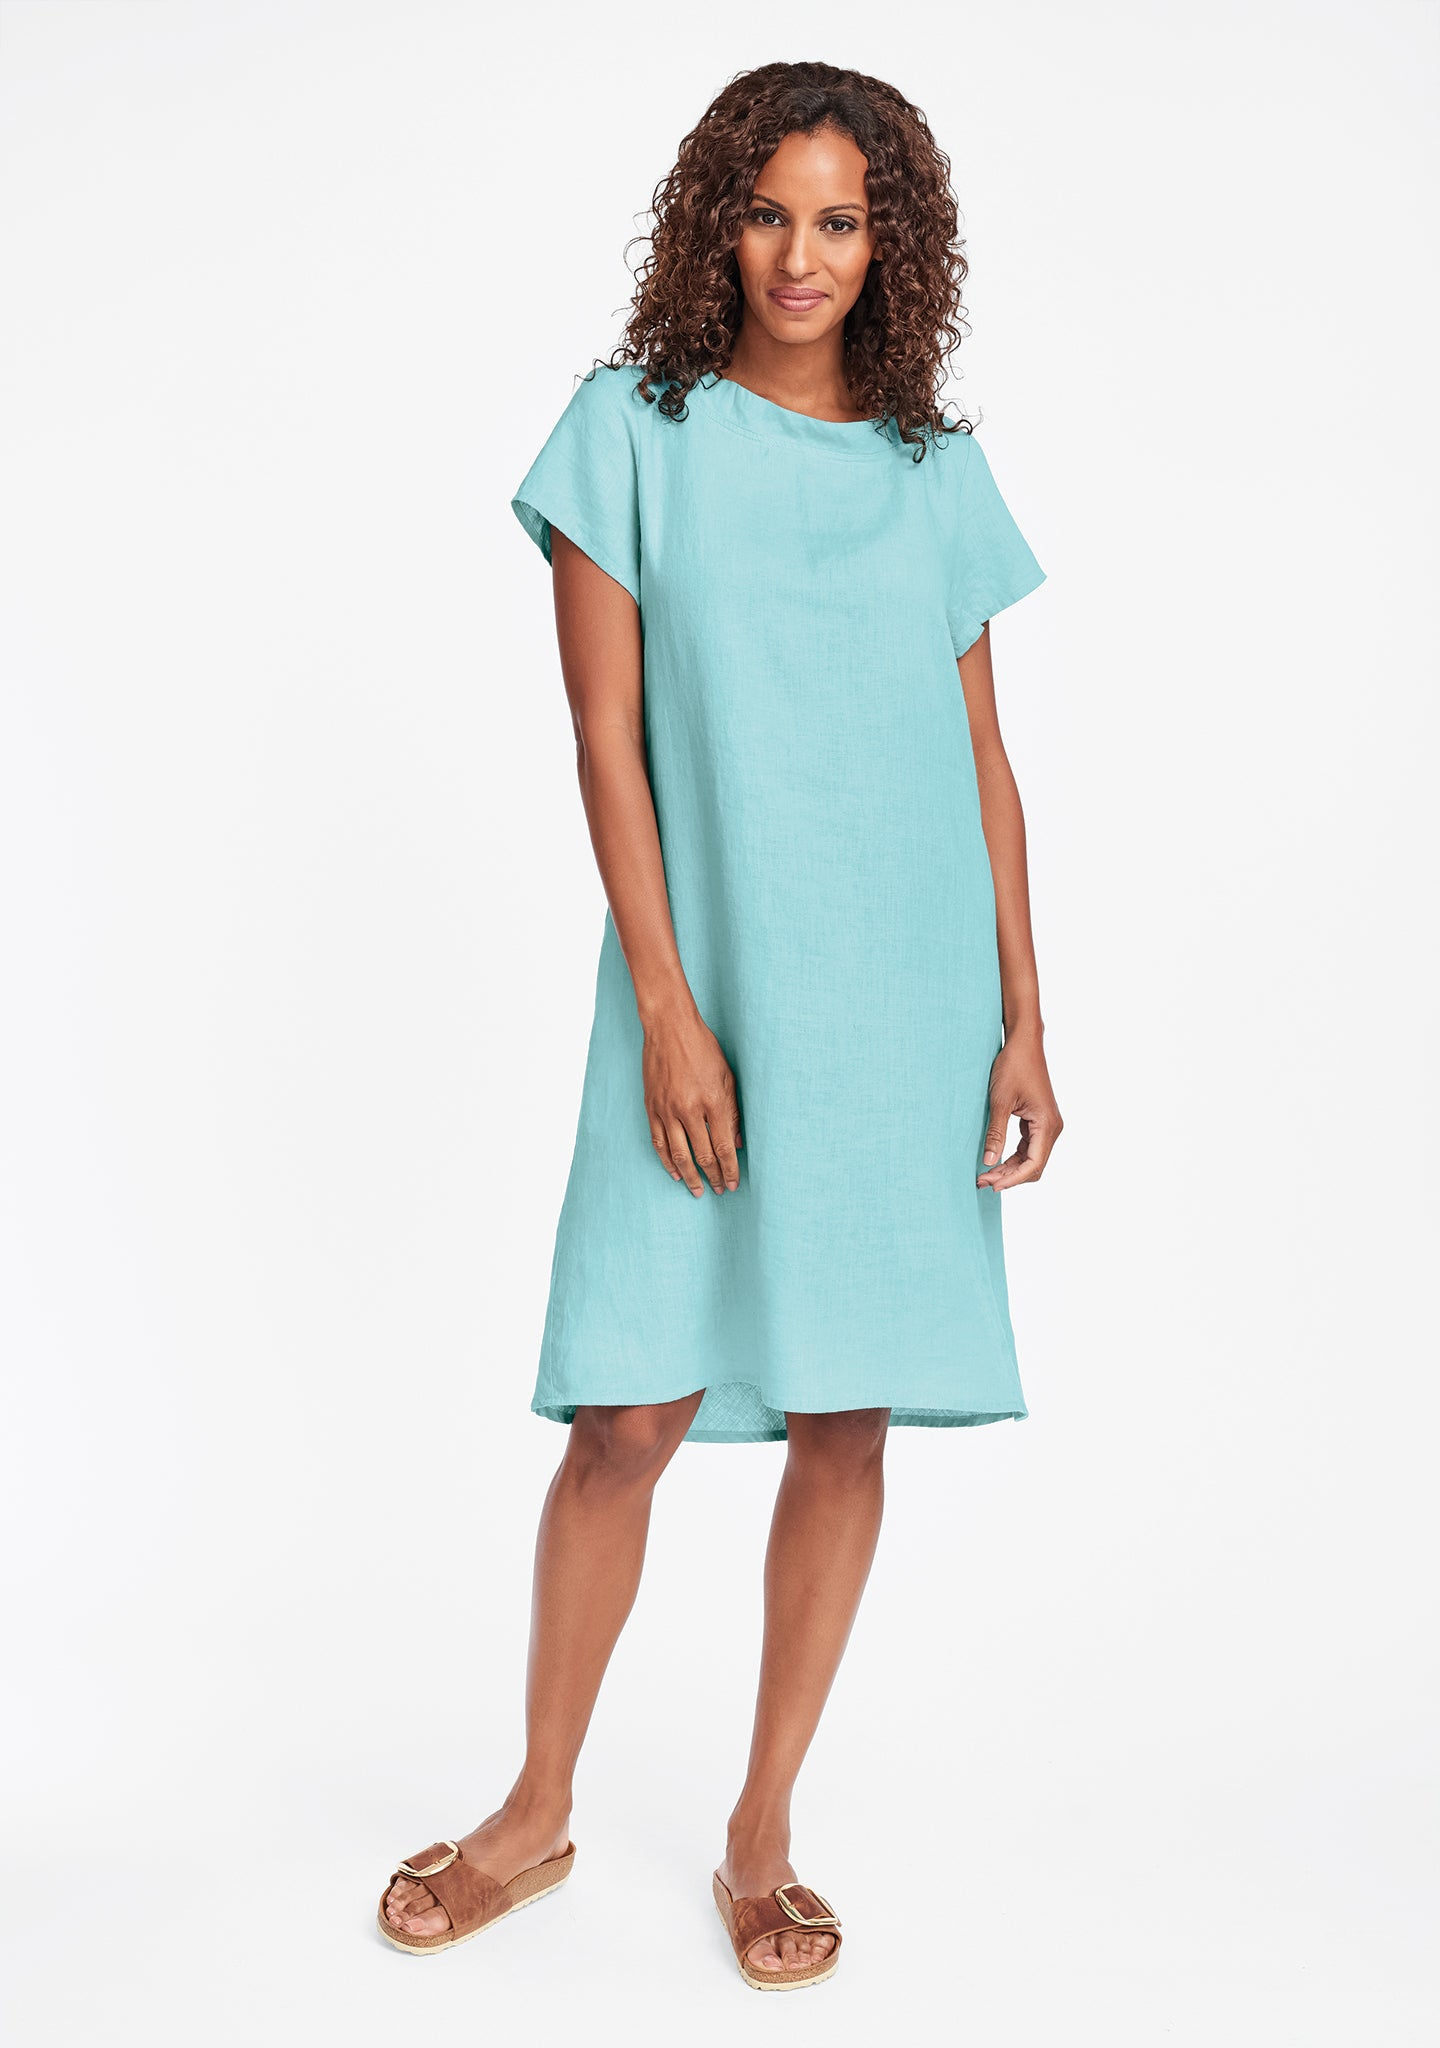 truly dreamy dress linen shift dress blue